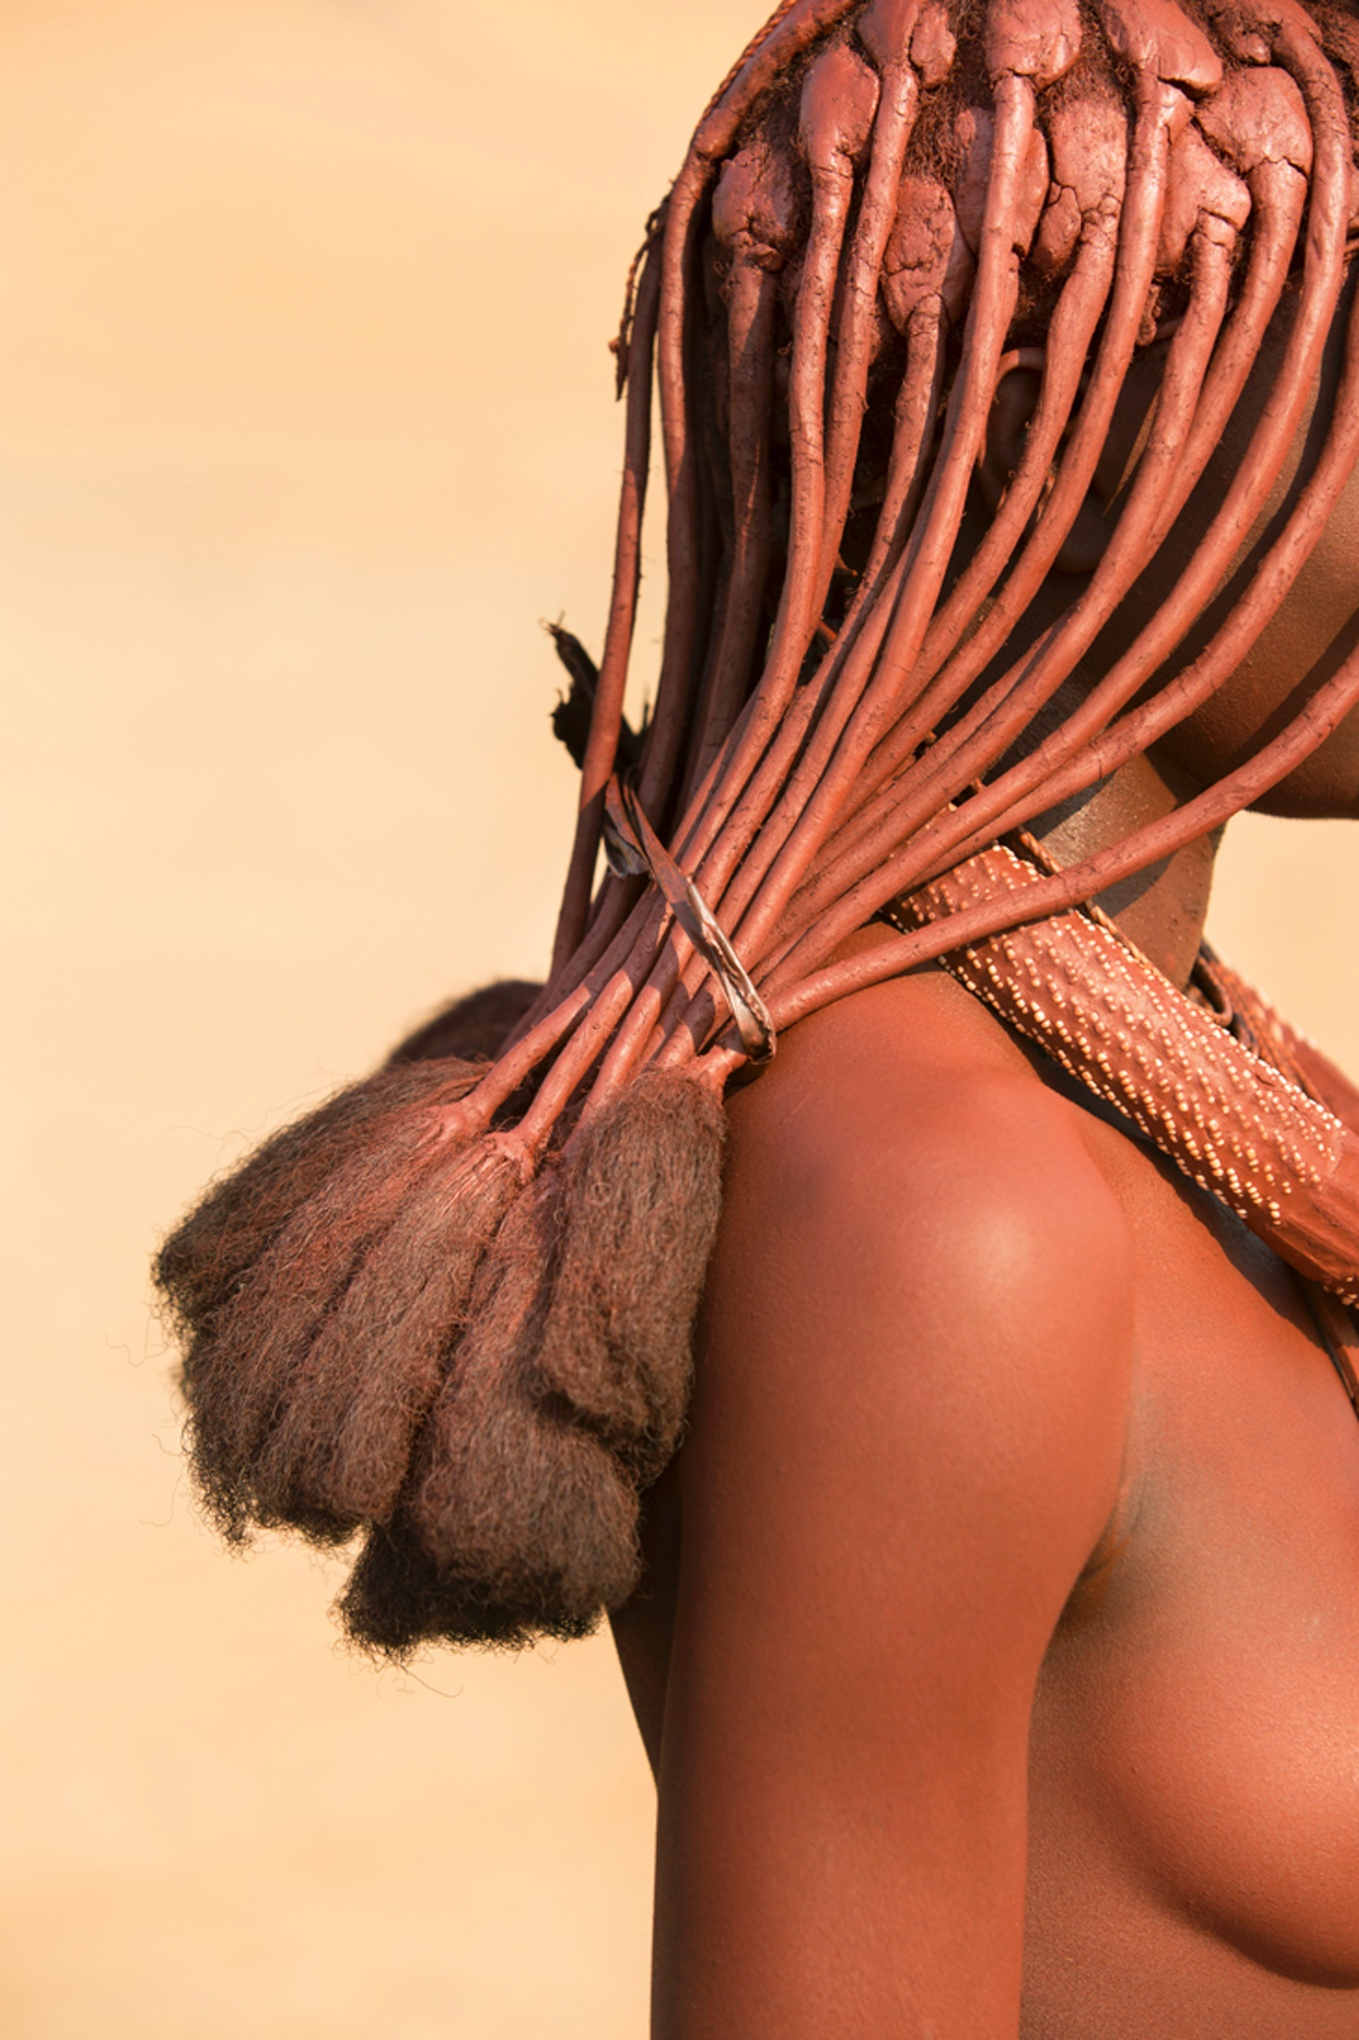 Travel Photographer of the Year overall winner, Philip Lee Harvey, UK Detail of Himba tribeswoman's hair, north-west Namibia Photograph: Philip Lee Harvey/TPOTY